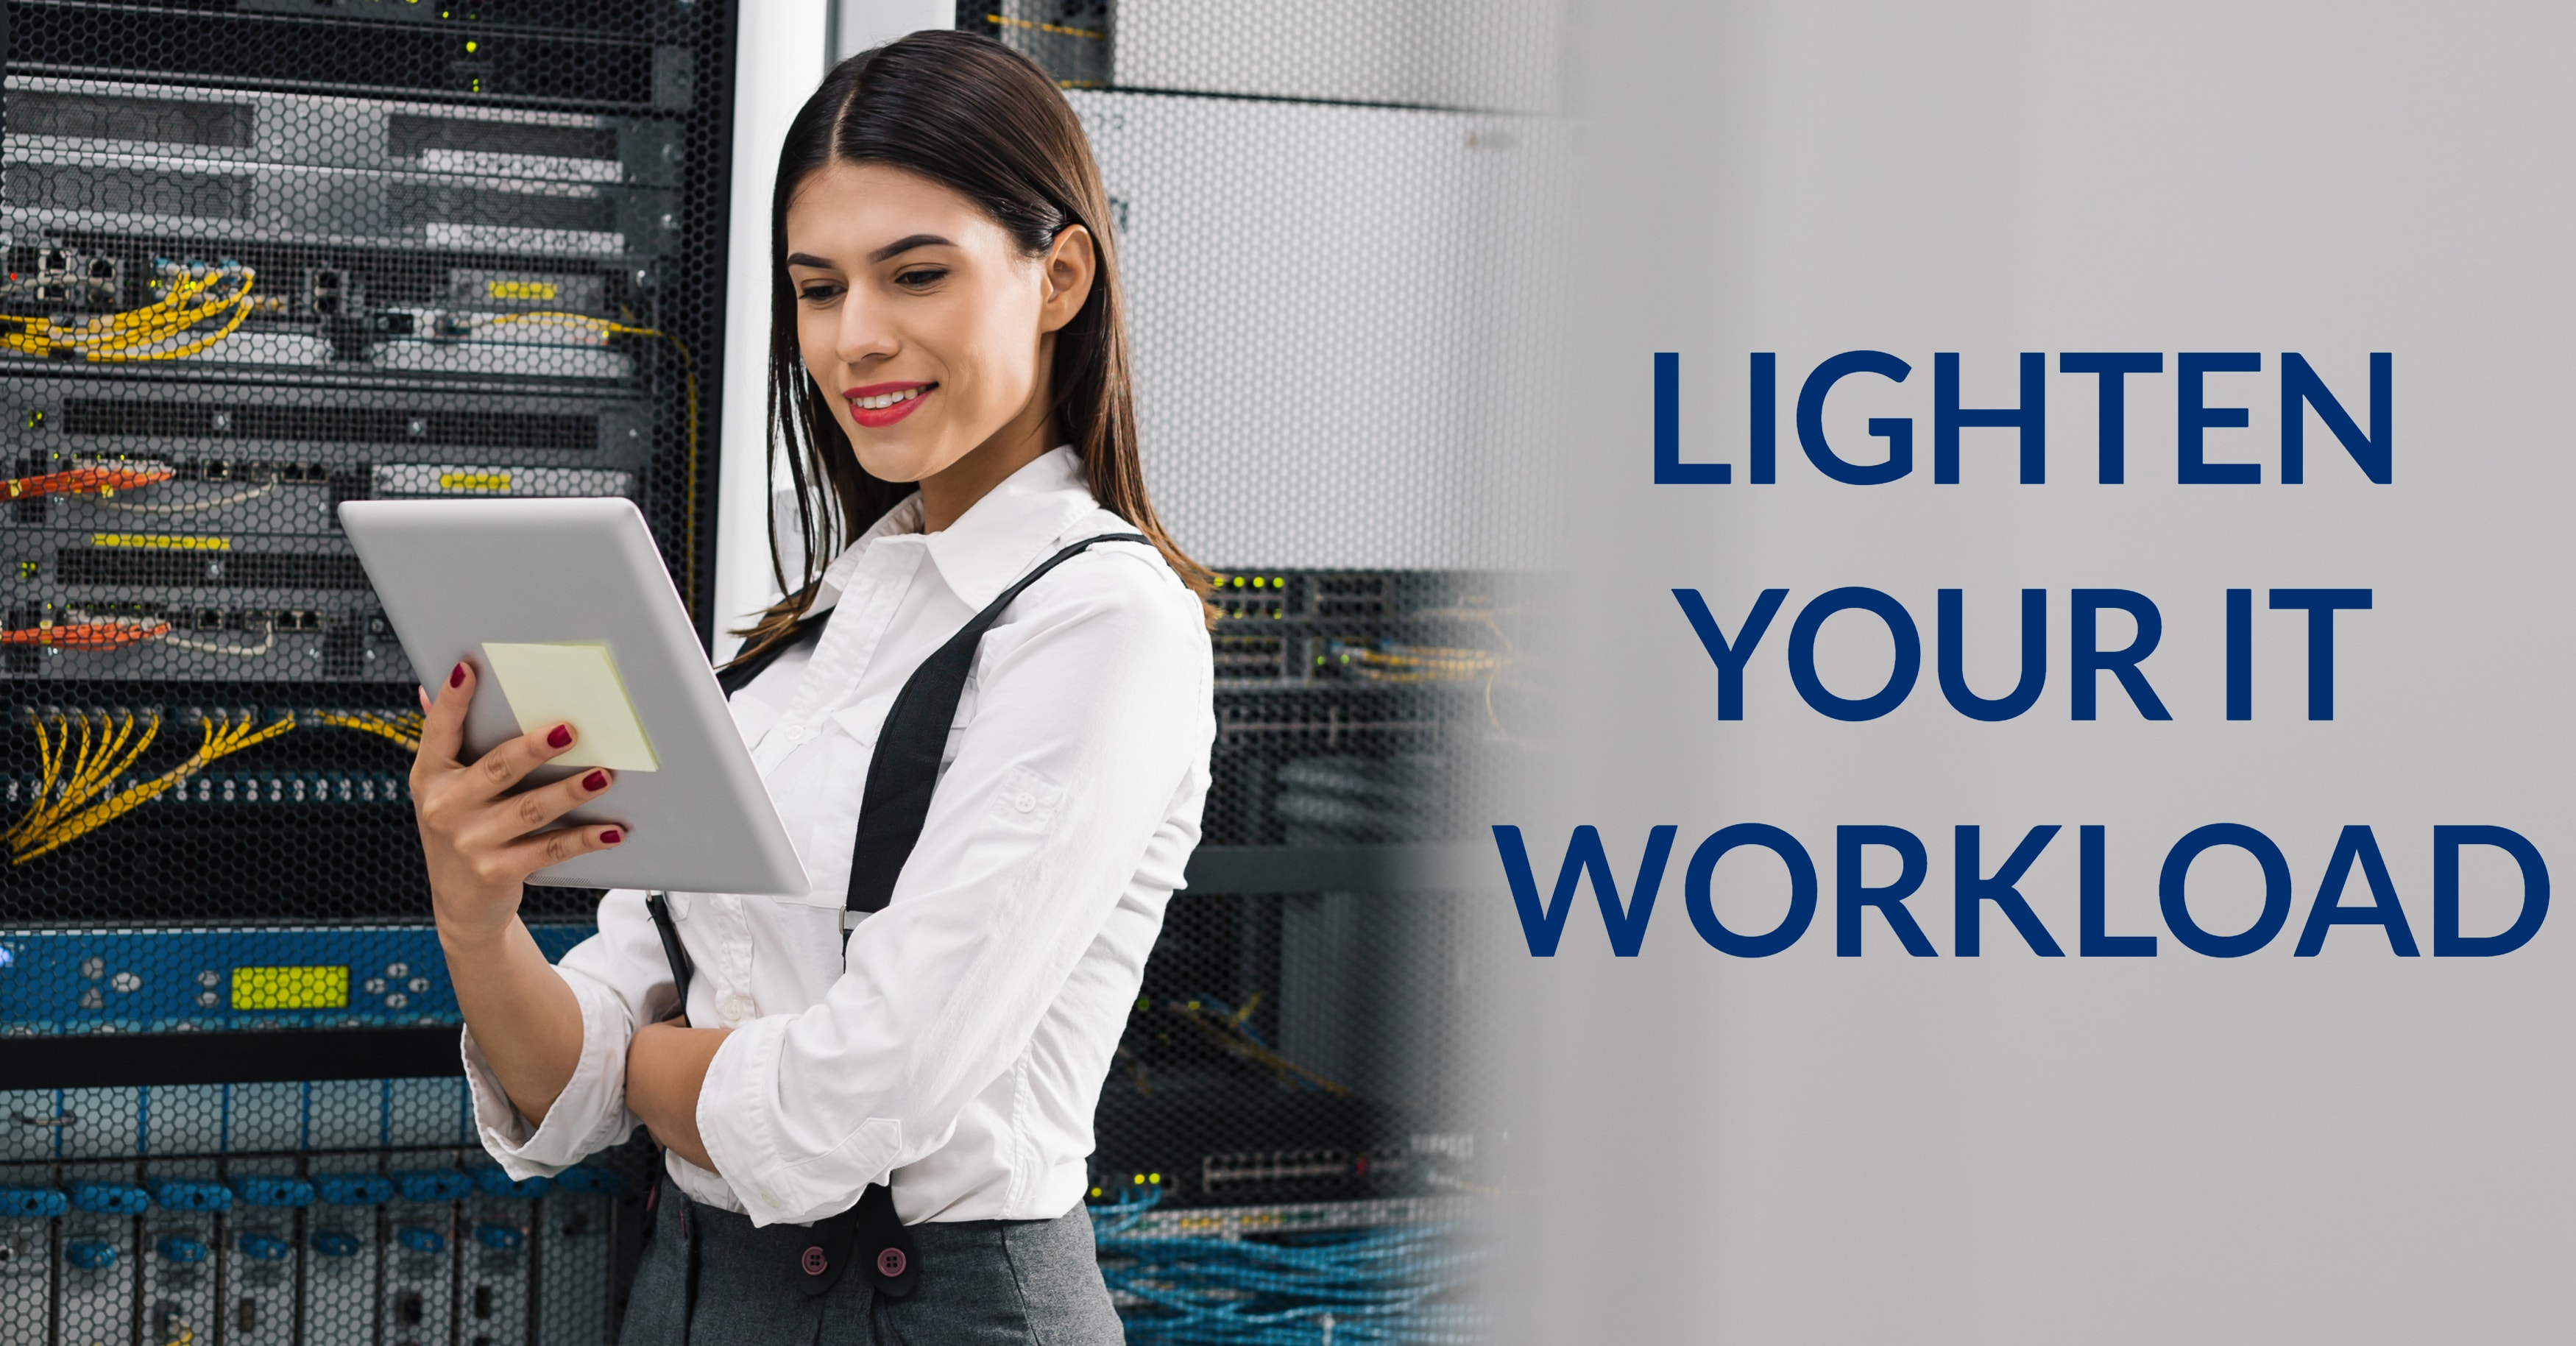 How to Lighten Your IT Workload